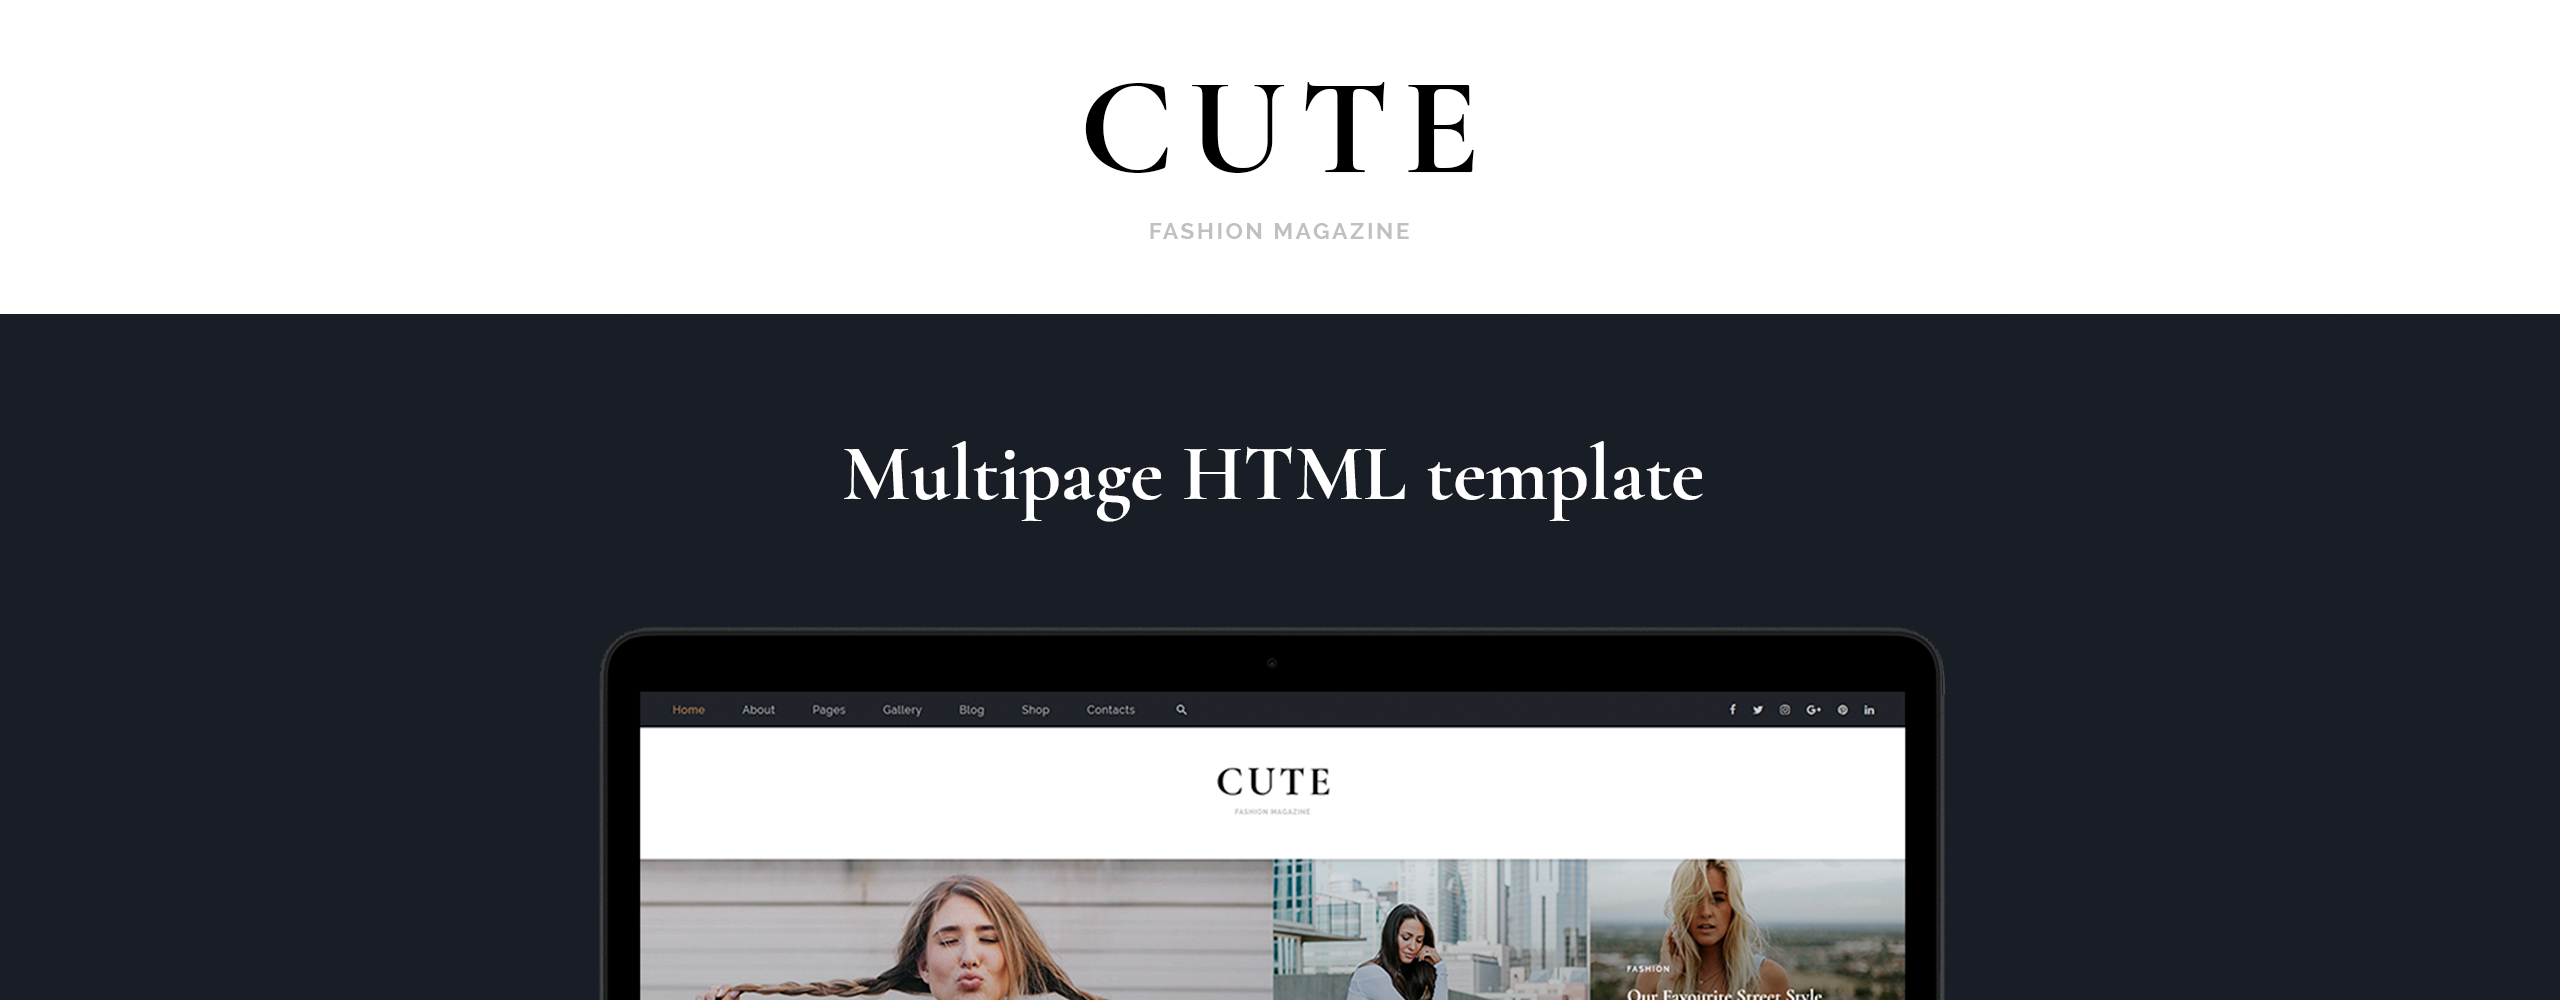 Cute - Fashion Magazine Multipage HTML5 Website Template